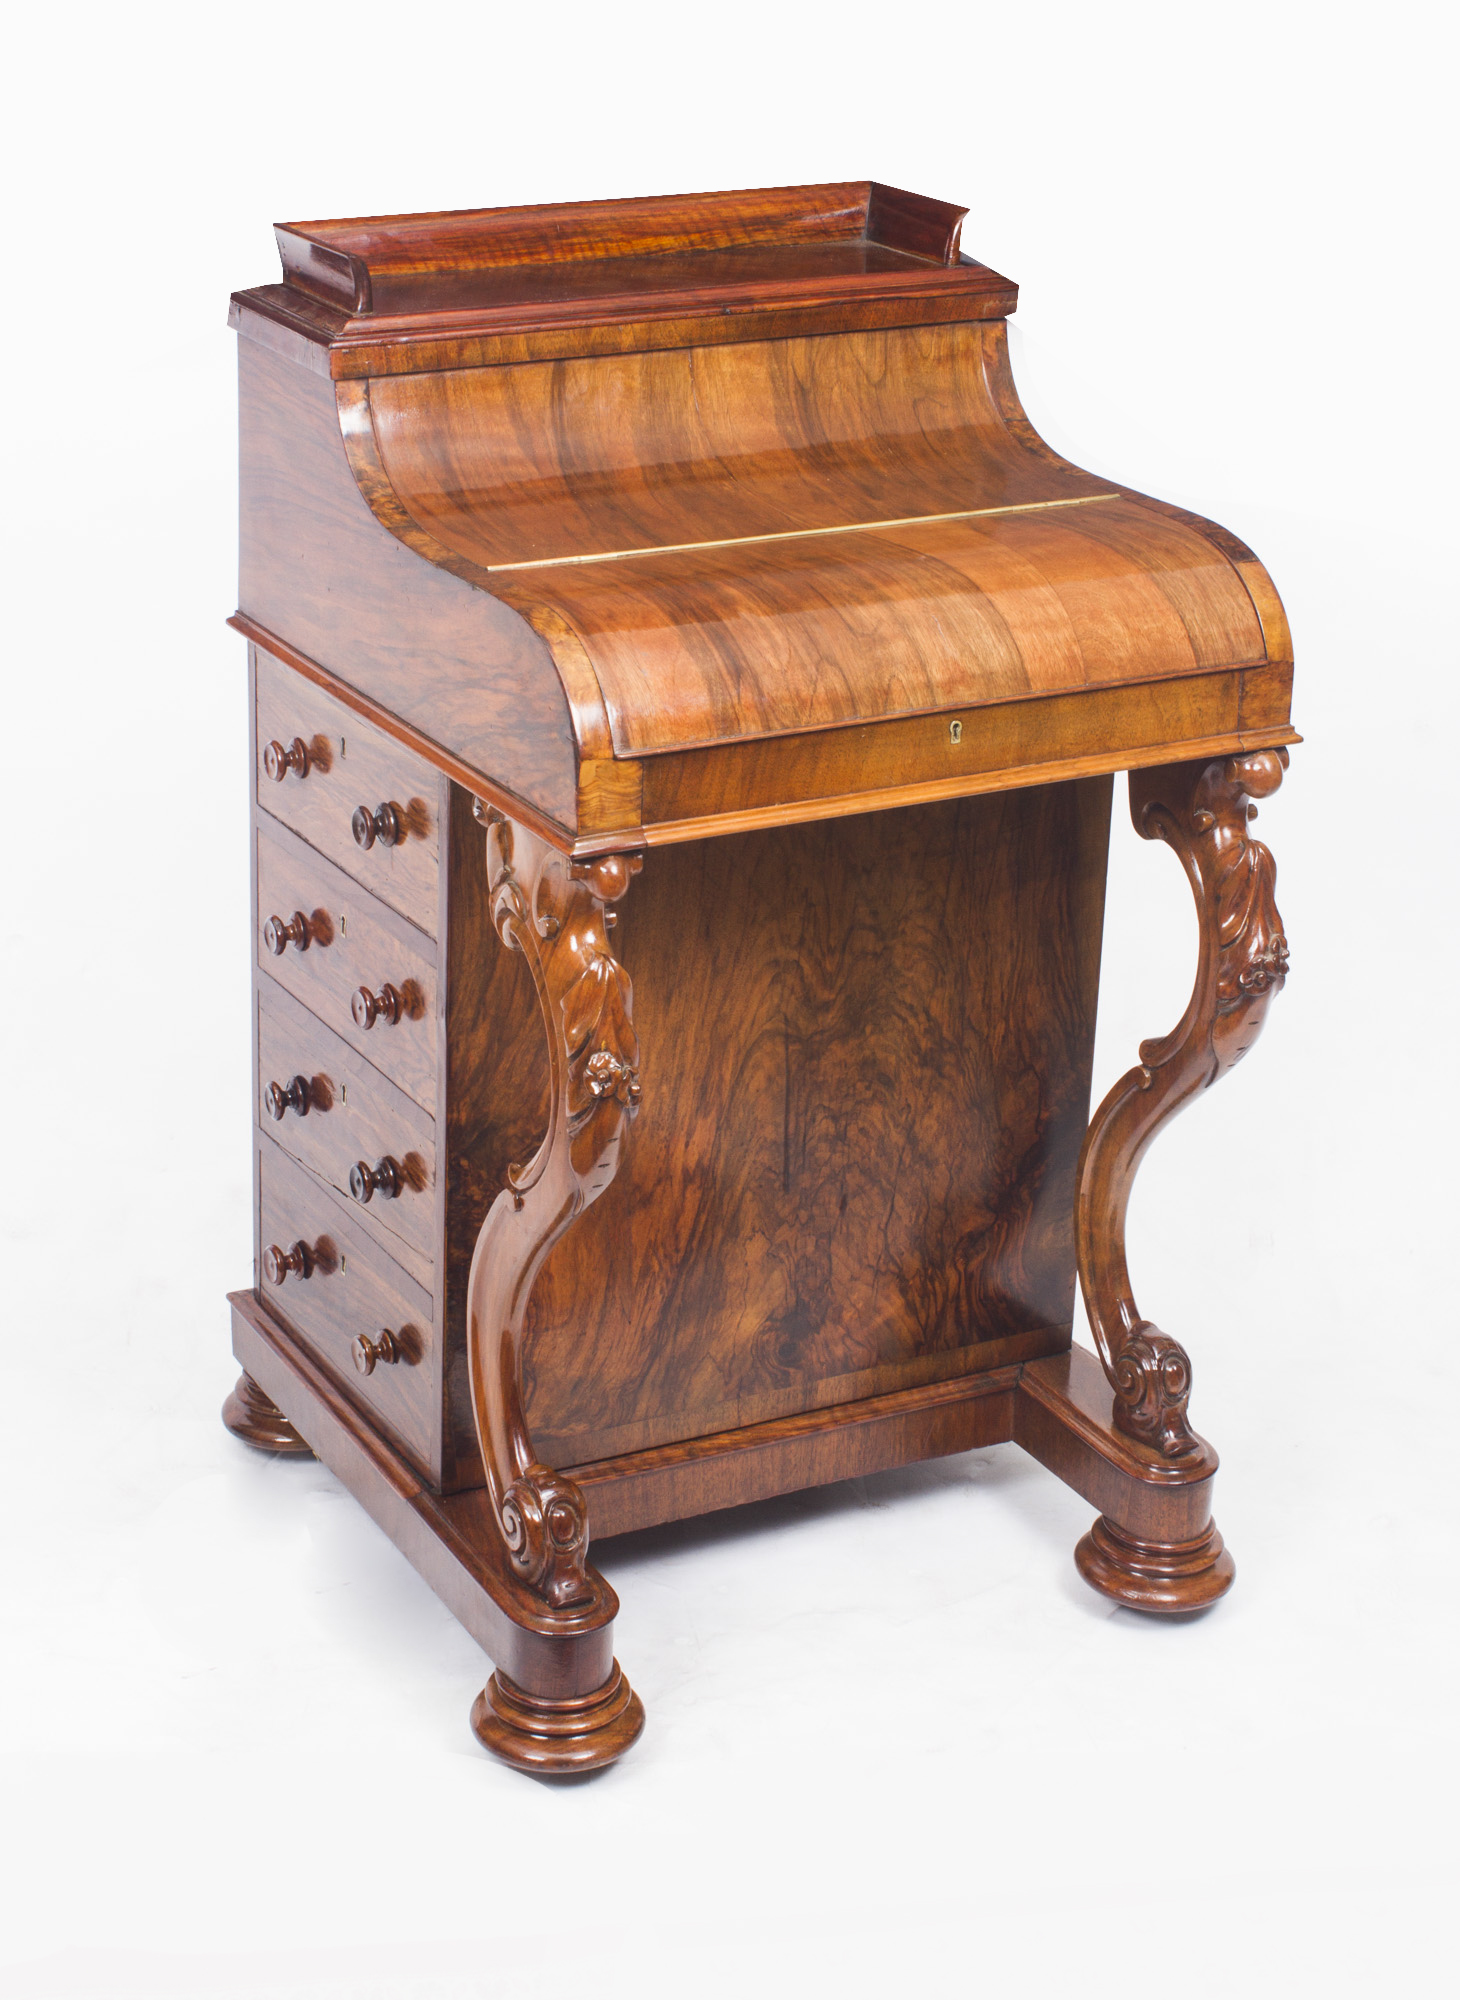 06995-Antique-Burr-Walnut-Pop-Up-Davenport-Desk- - More Desirable Desks From Regent Antiques - Antique Burr Walnut Pop